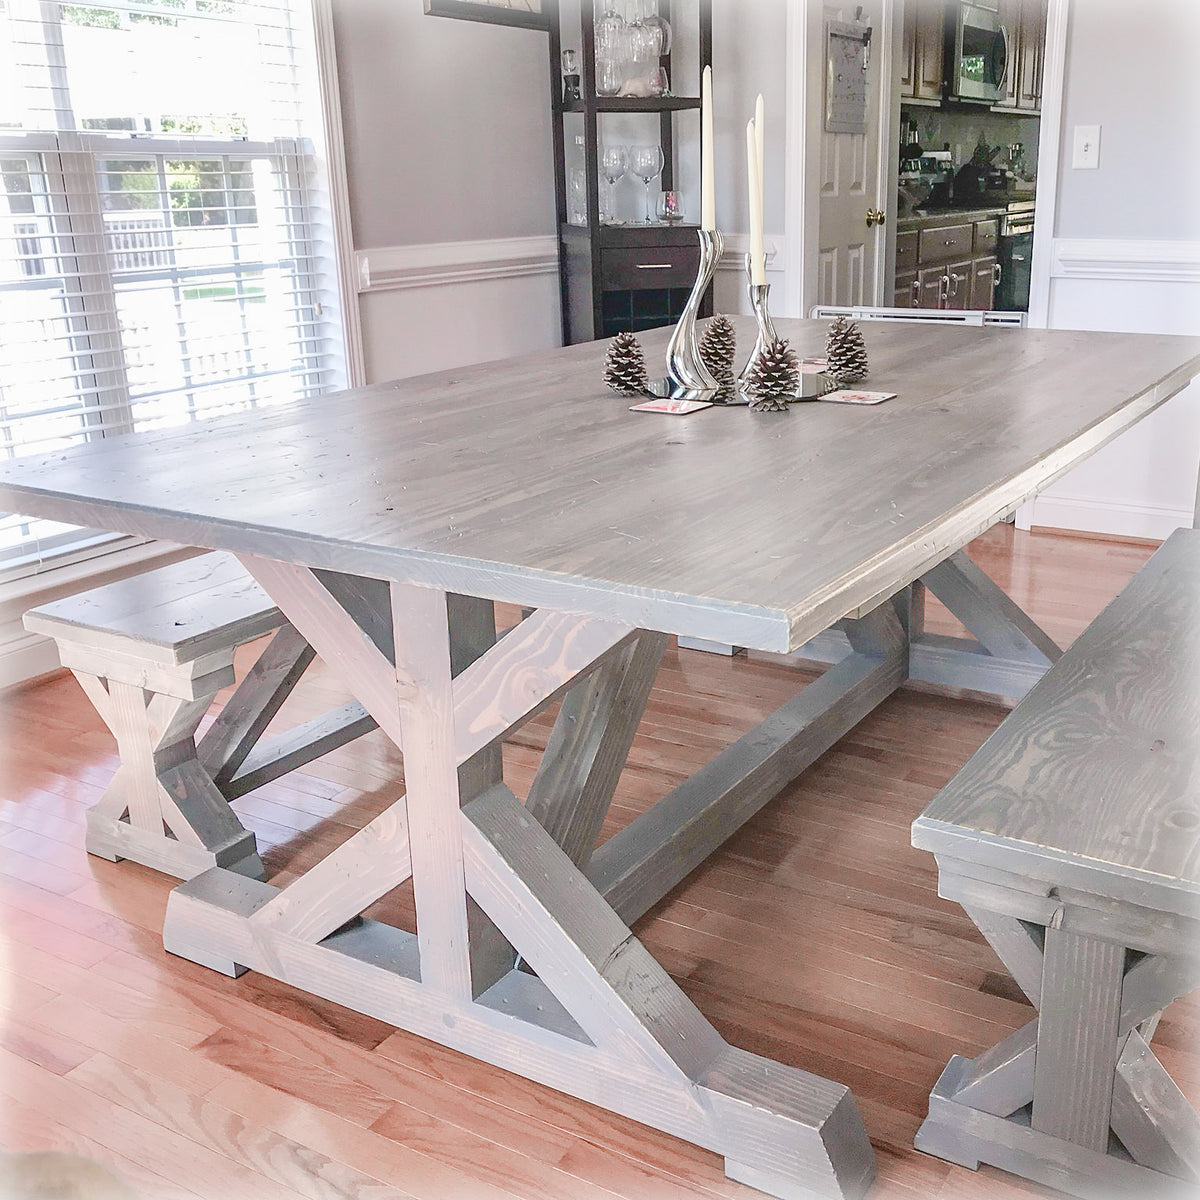 Rustic Douglas Fir Trestle Farm Table And Benches Overlin Designs